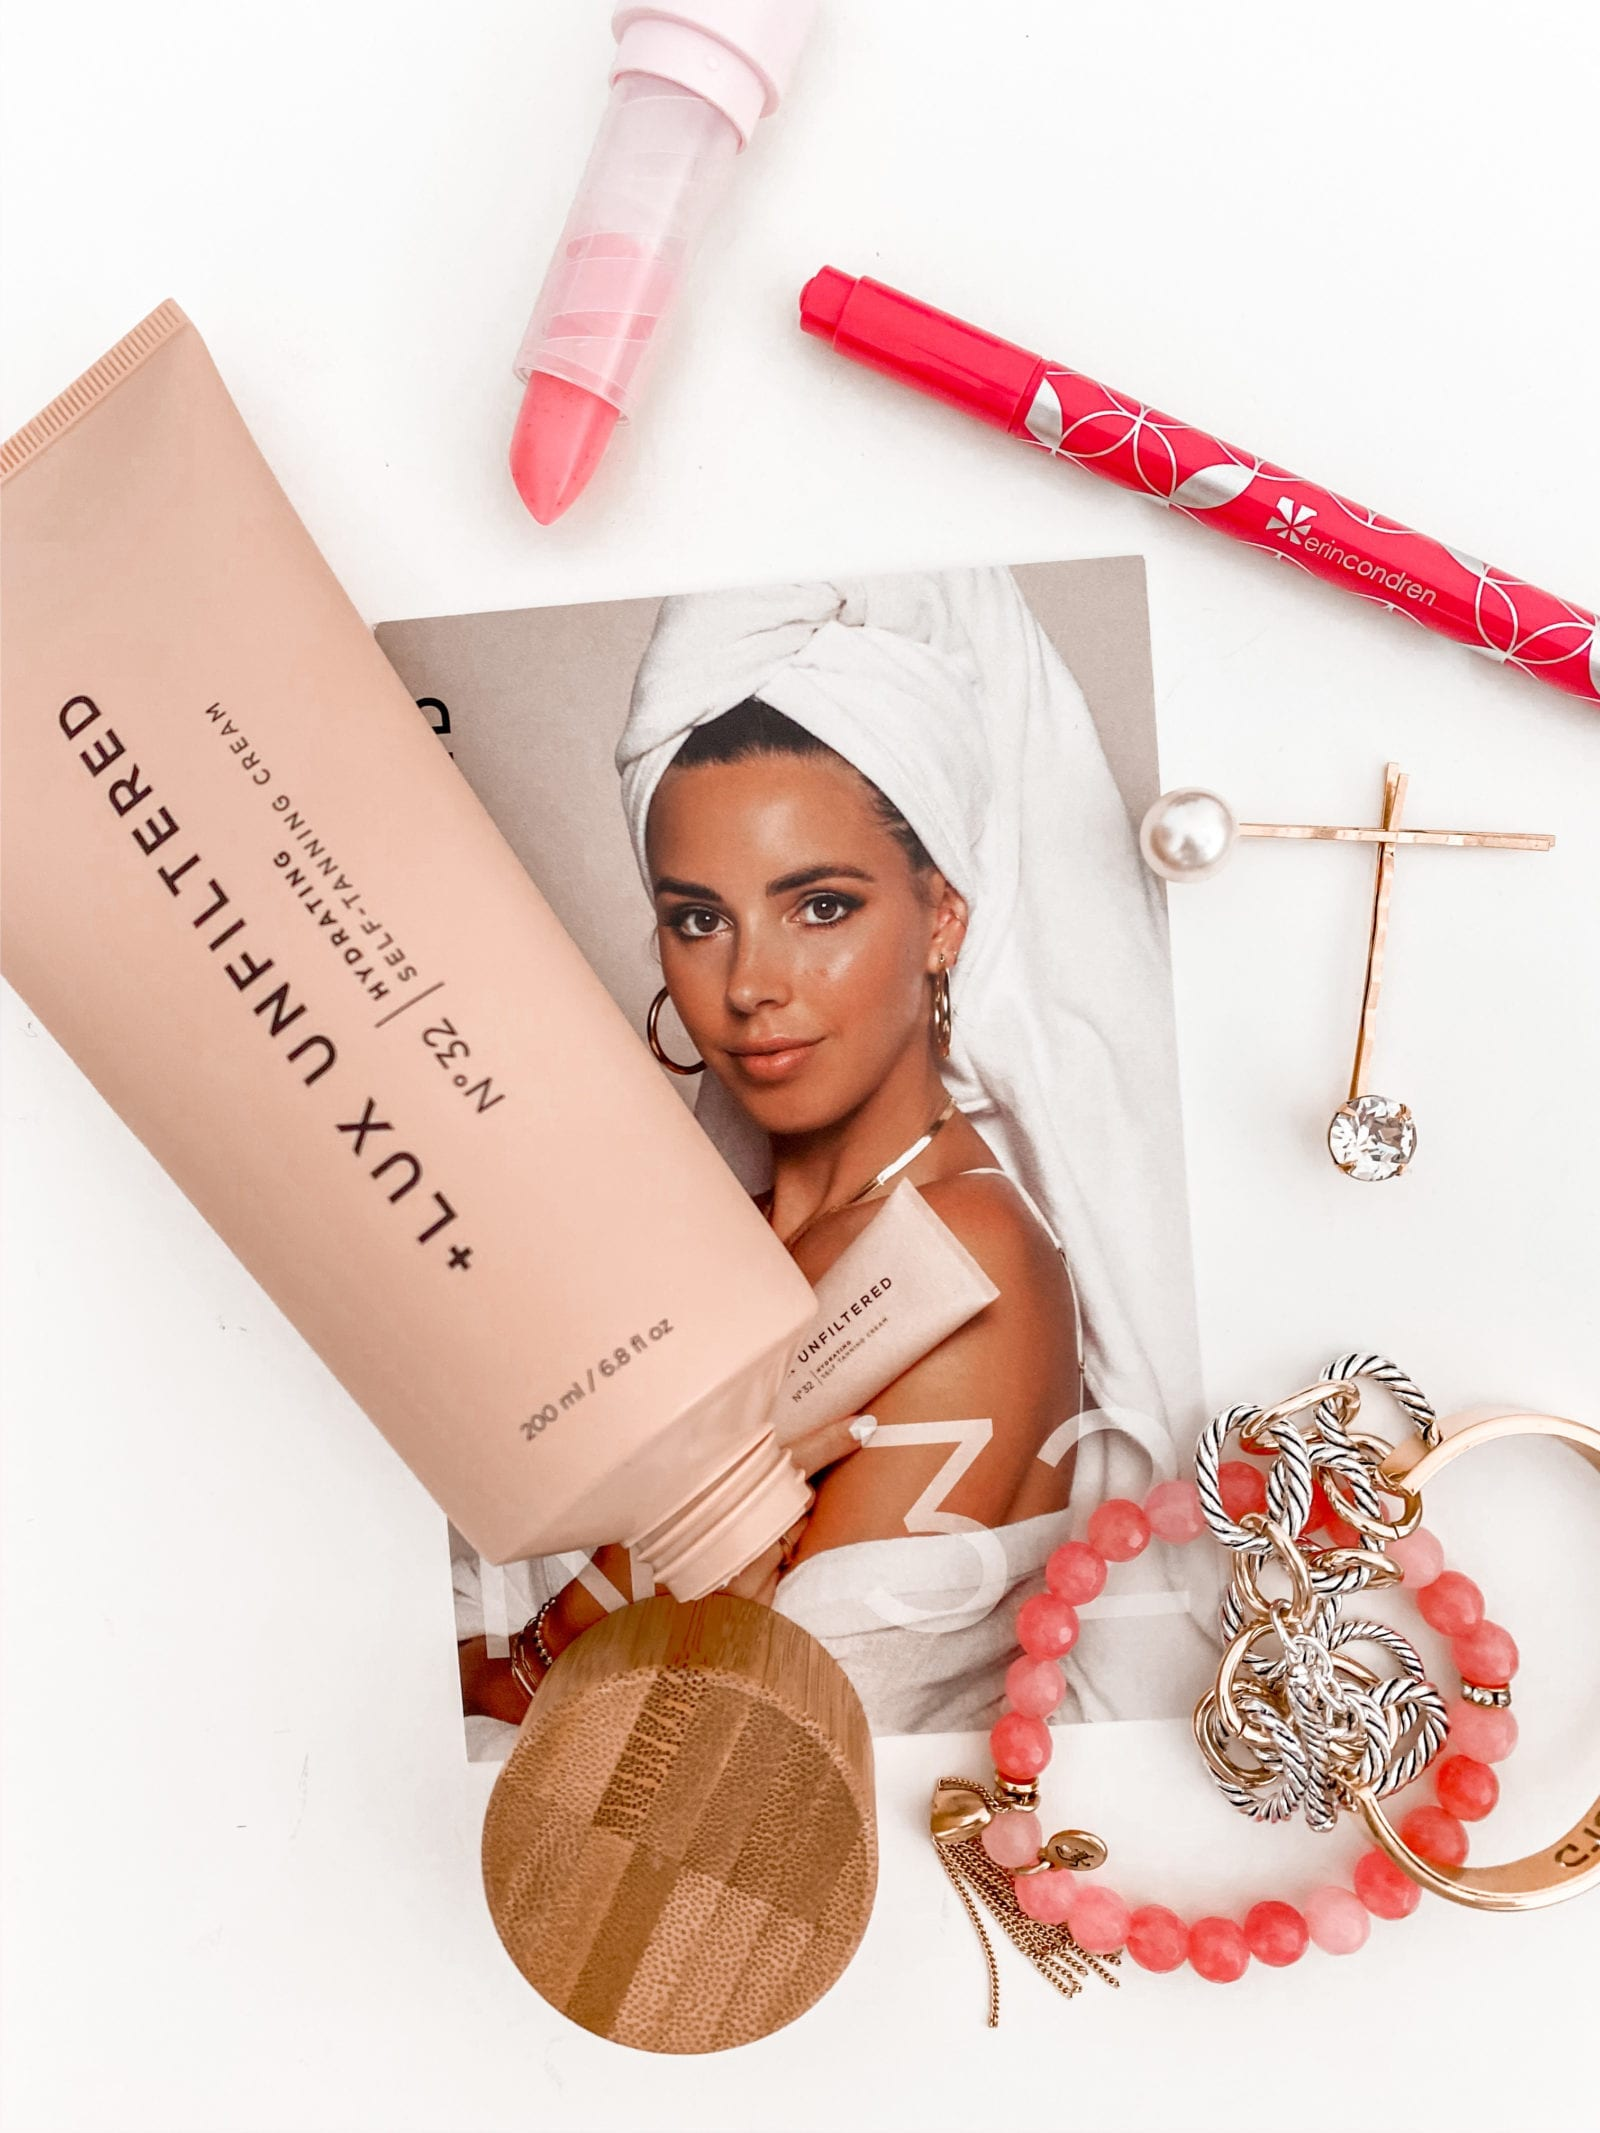 This is a flat lay photo including jewelry, some makeup items and the Lux Unfiltered Gradual Tan from Sivan Ayla.